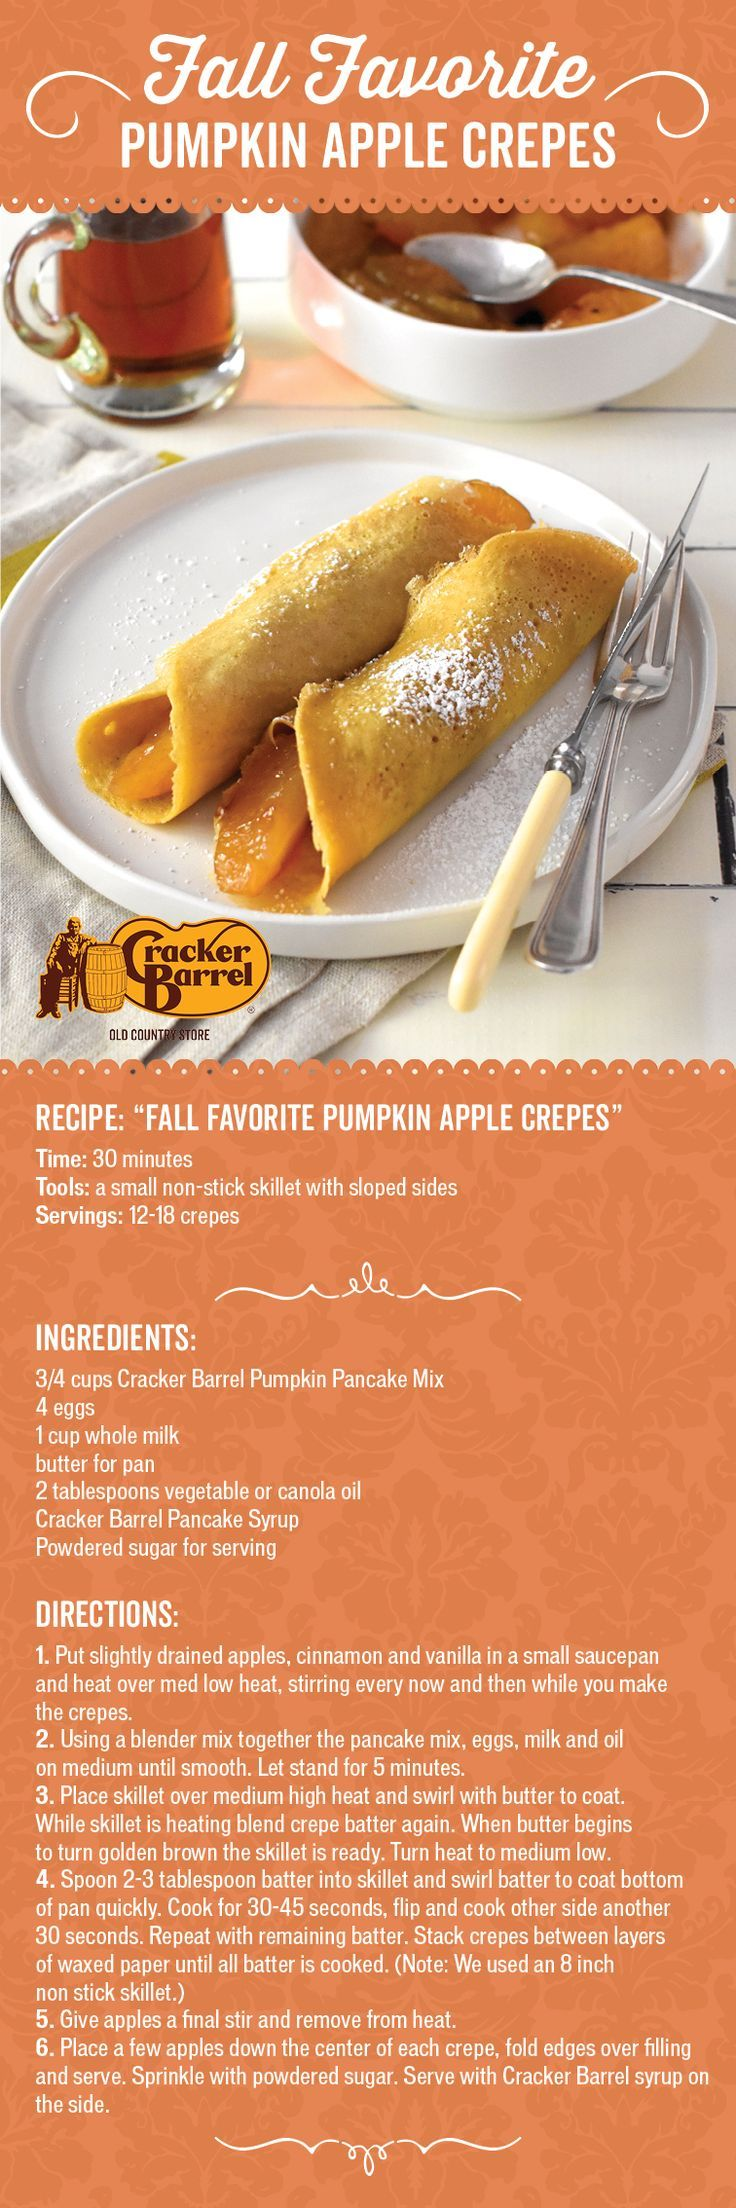 Try this seasonal riff on pancakes featuring two of fall's favorite flavors. All you'll need is a non-stick skillet, a jar of our Cracker Barrel Apple Pie Filling, Cracker Barrel Pumpkin Pancake Mix, a bottle of Cracker Barrel Pure Natural Syrup, and simple household ingredients to make this tasty breakfast treat.